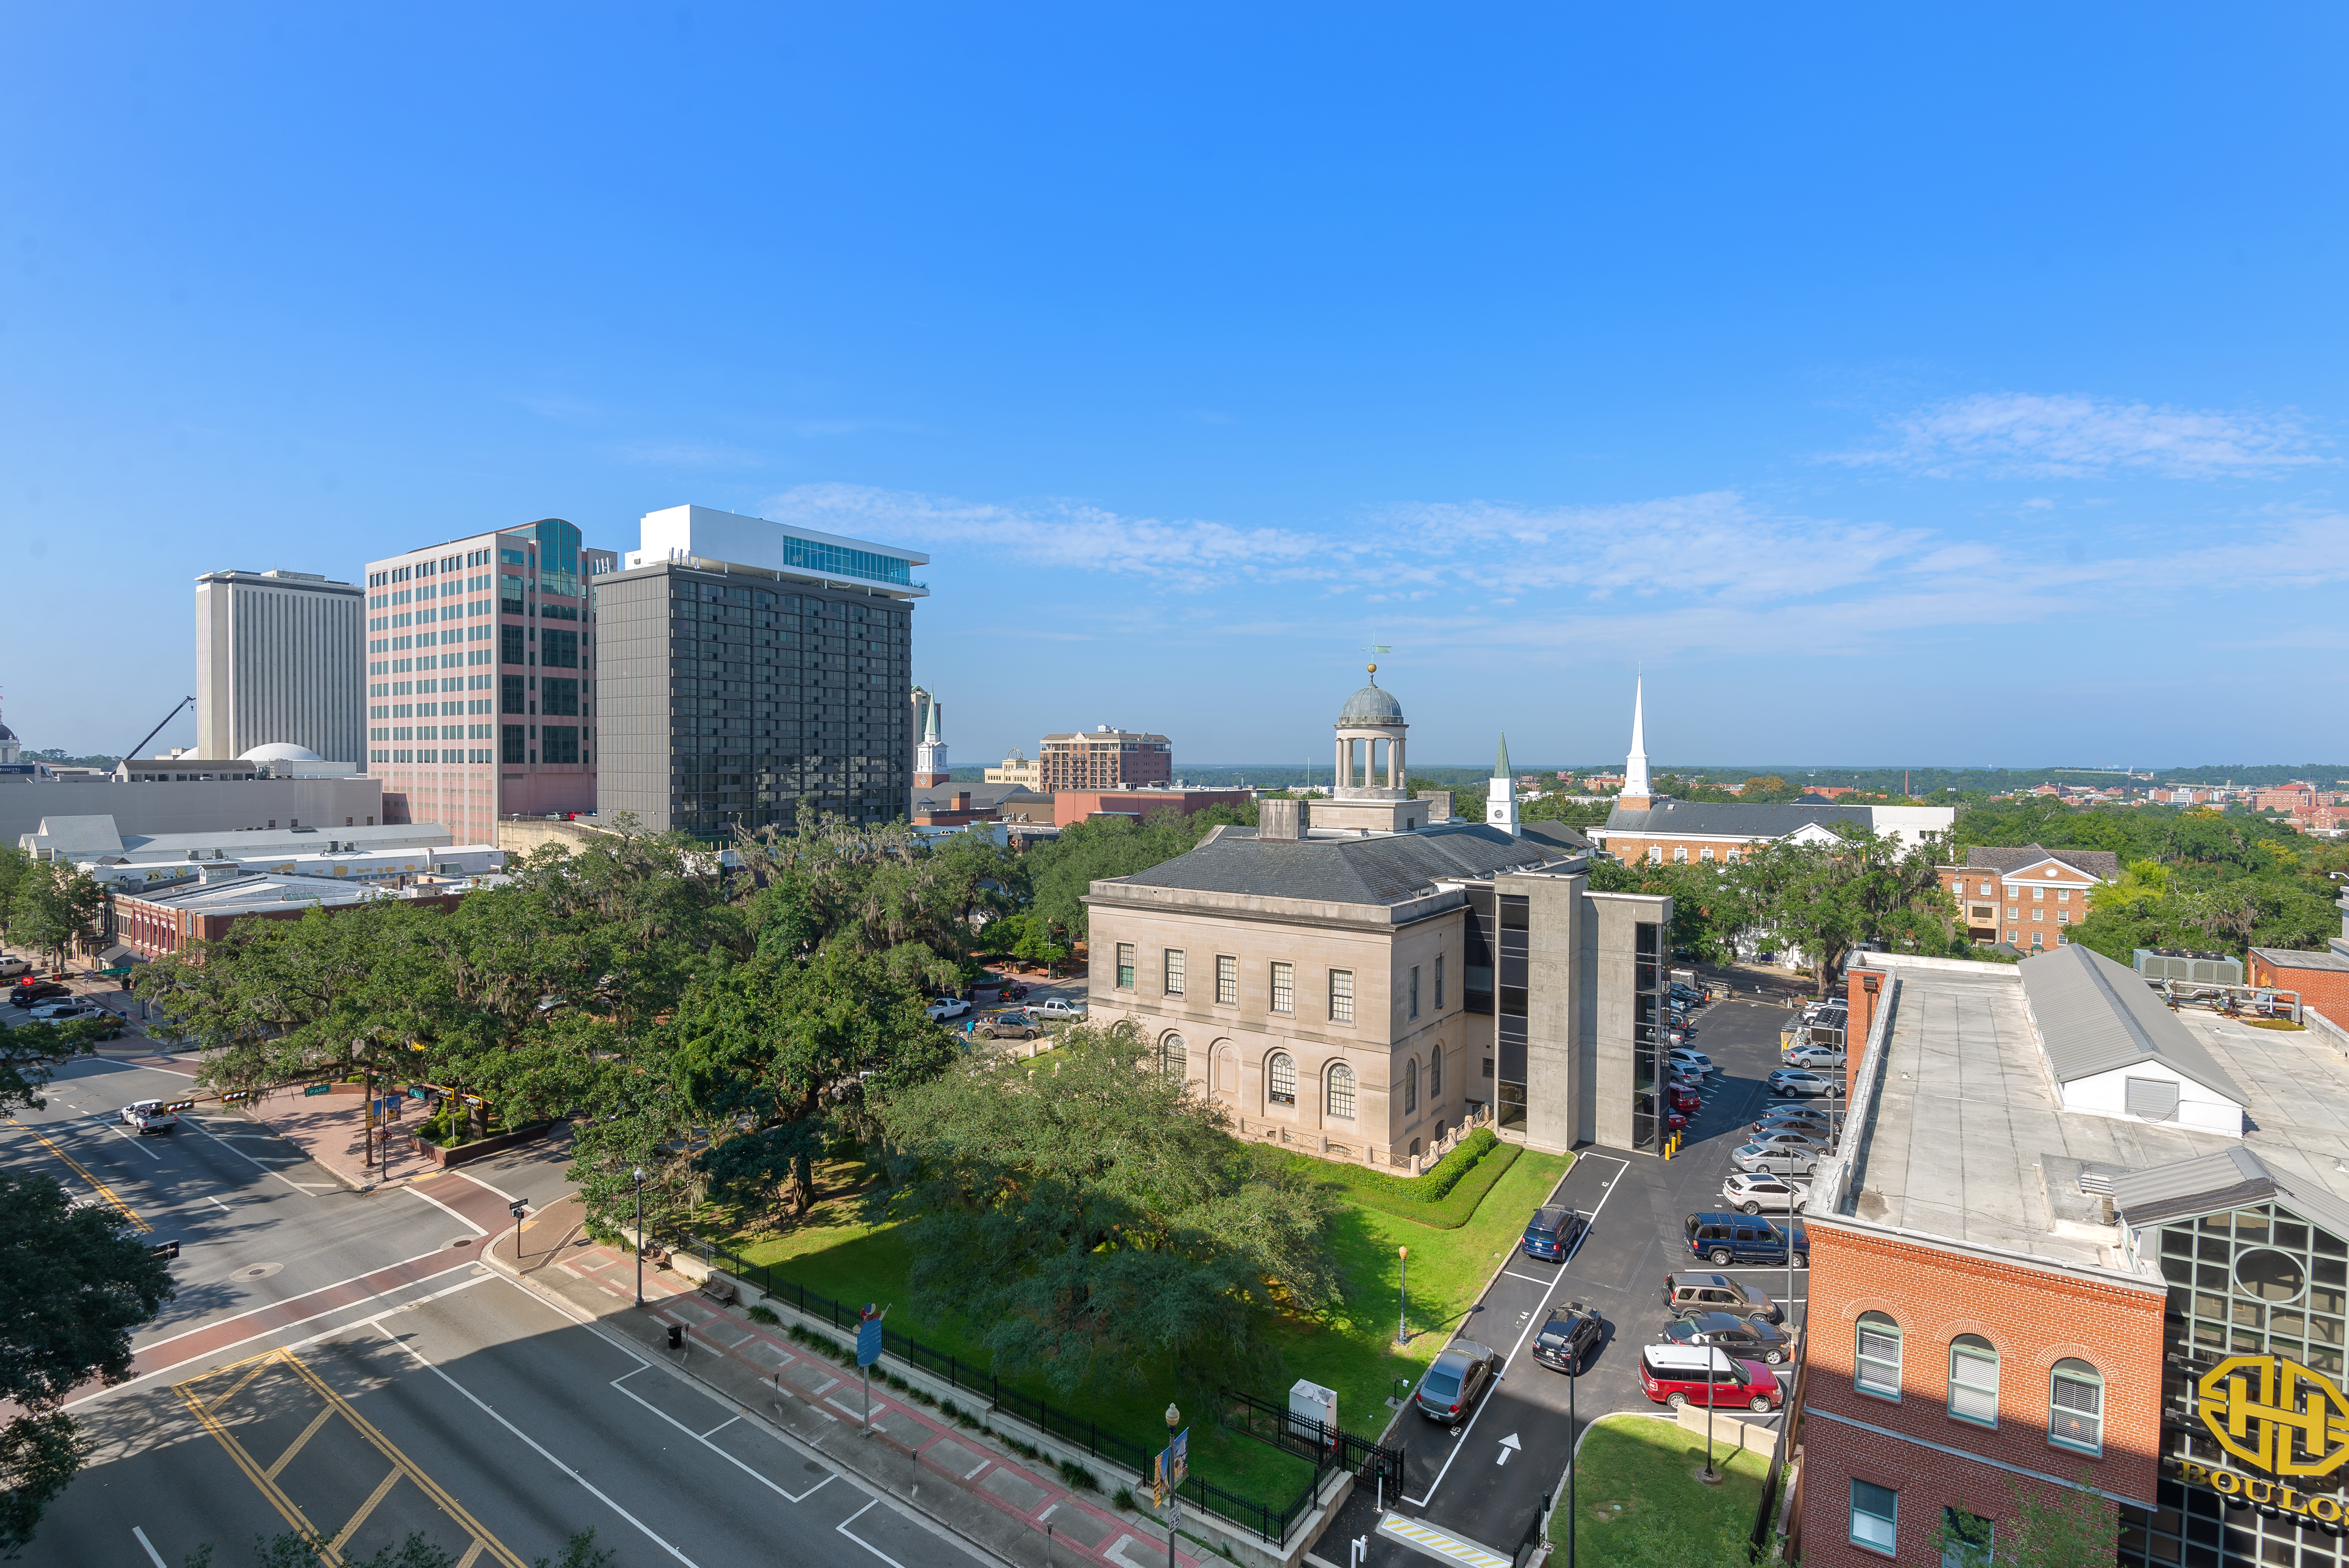 skyline of downtown Tallahassee